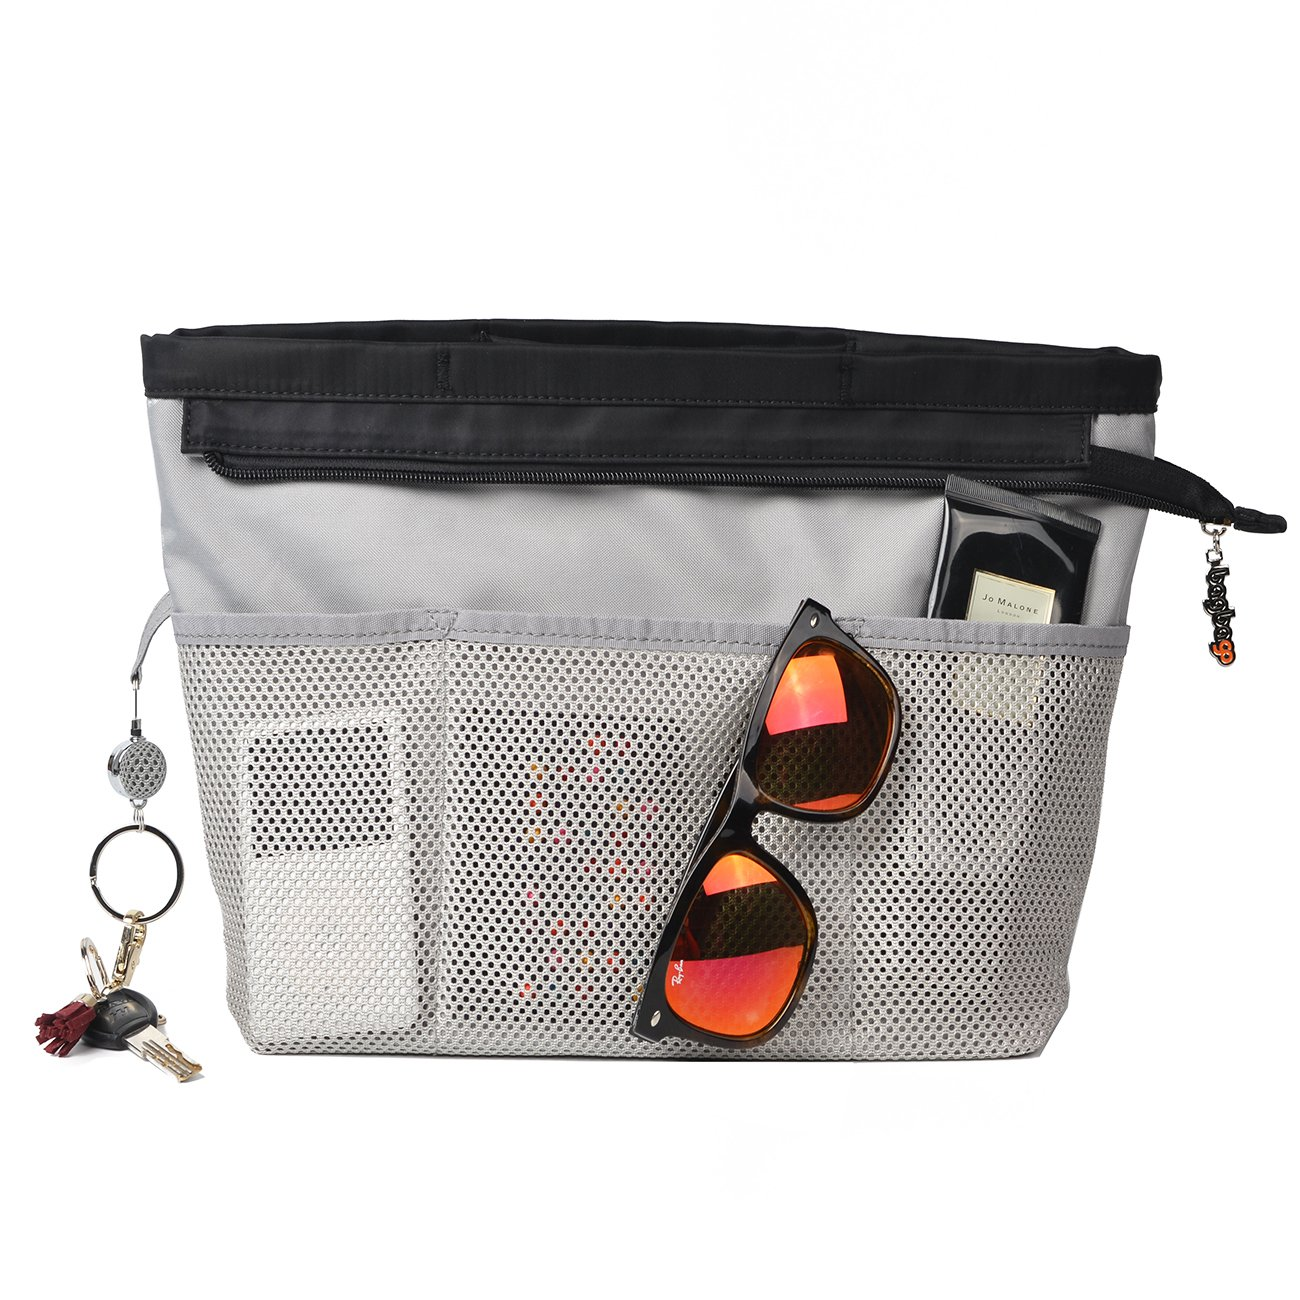 13 Pockets Purse Organizer Tote Insert Liner Bag Anti-Theft Keychain(M,Black) by BES CHAN (Image #6)